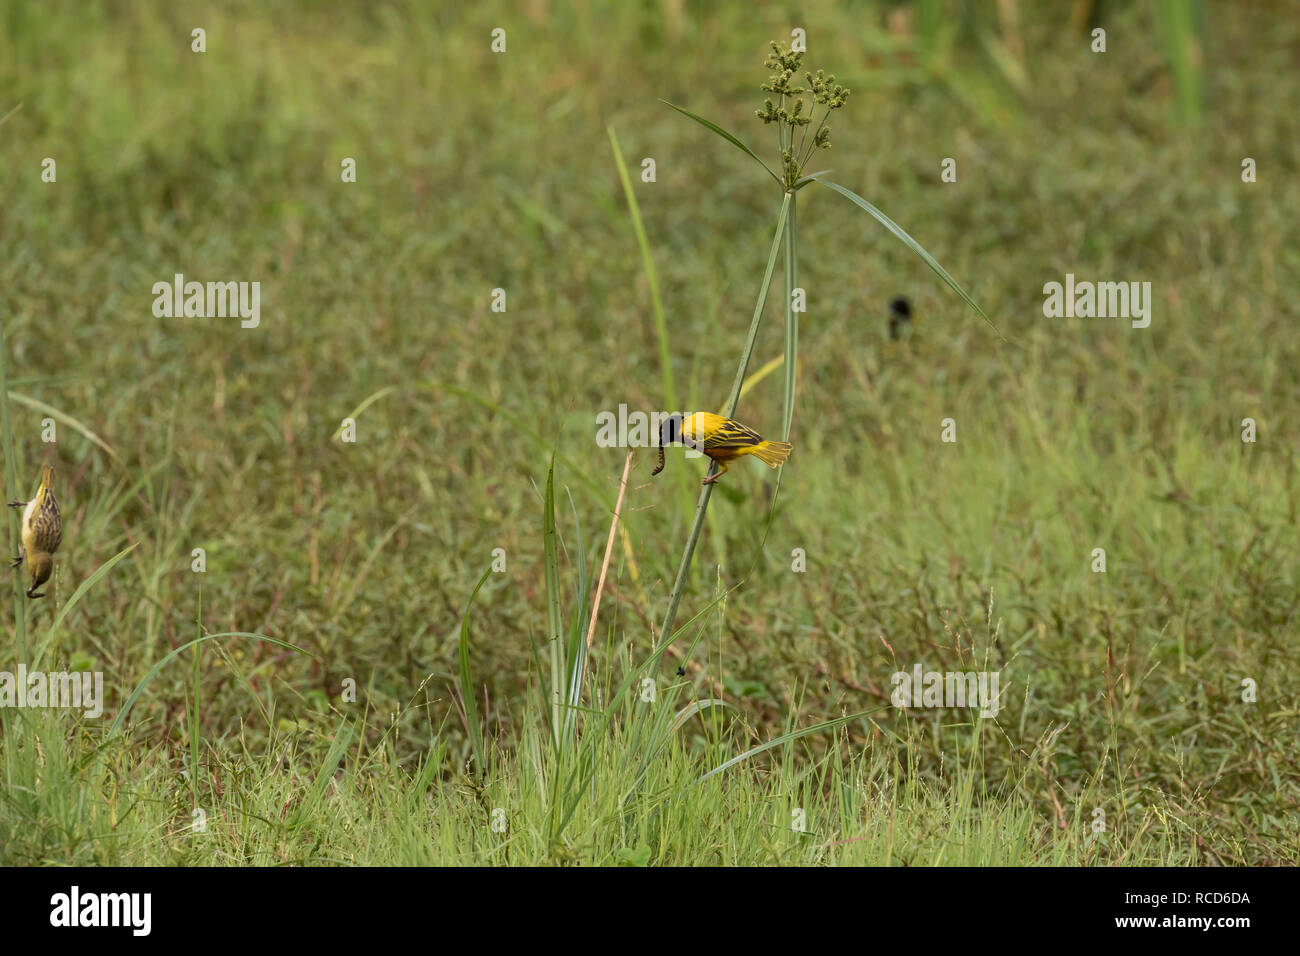 Golden-backed Weaver (Ploceus jacksoni) eating while perched on a reed in Lake Manyara National Park, Tanzania - Stock Image